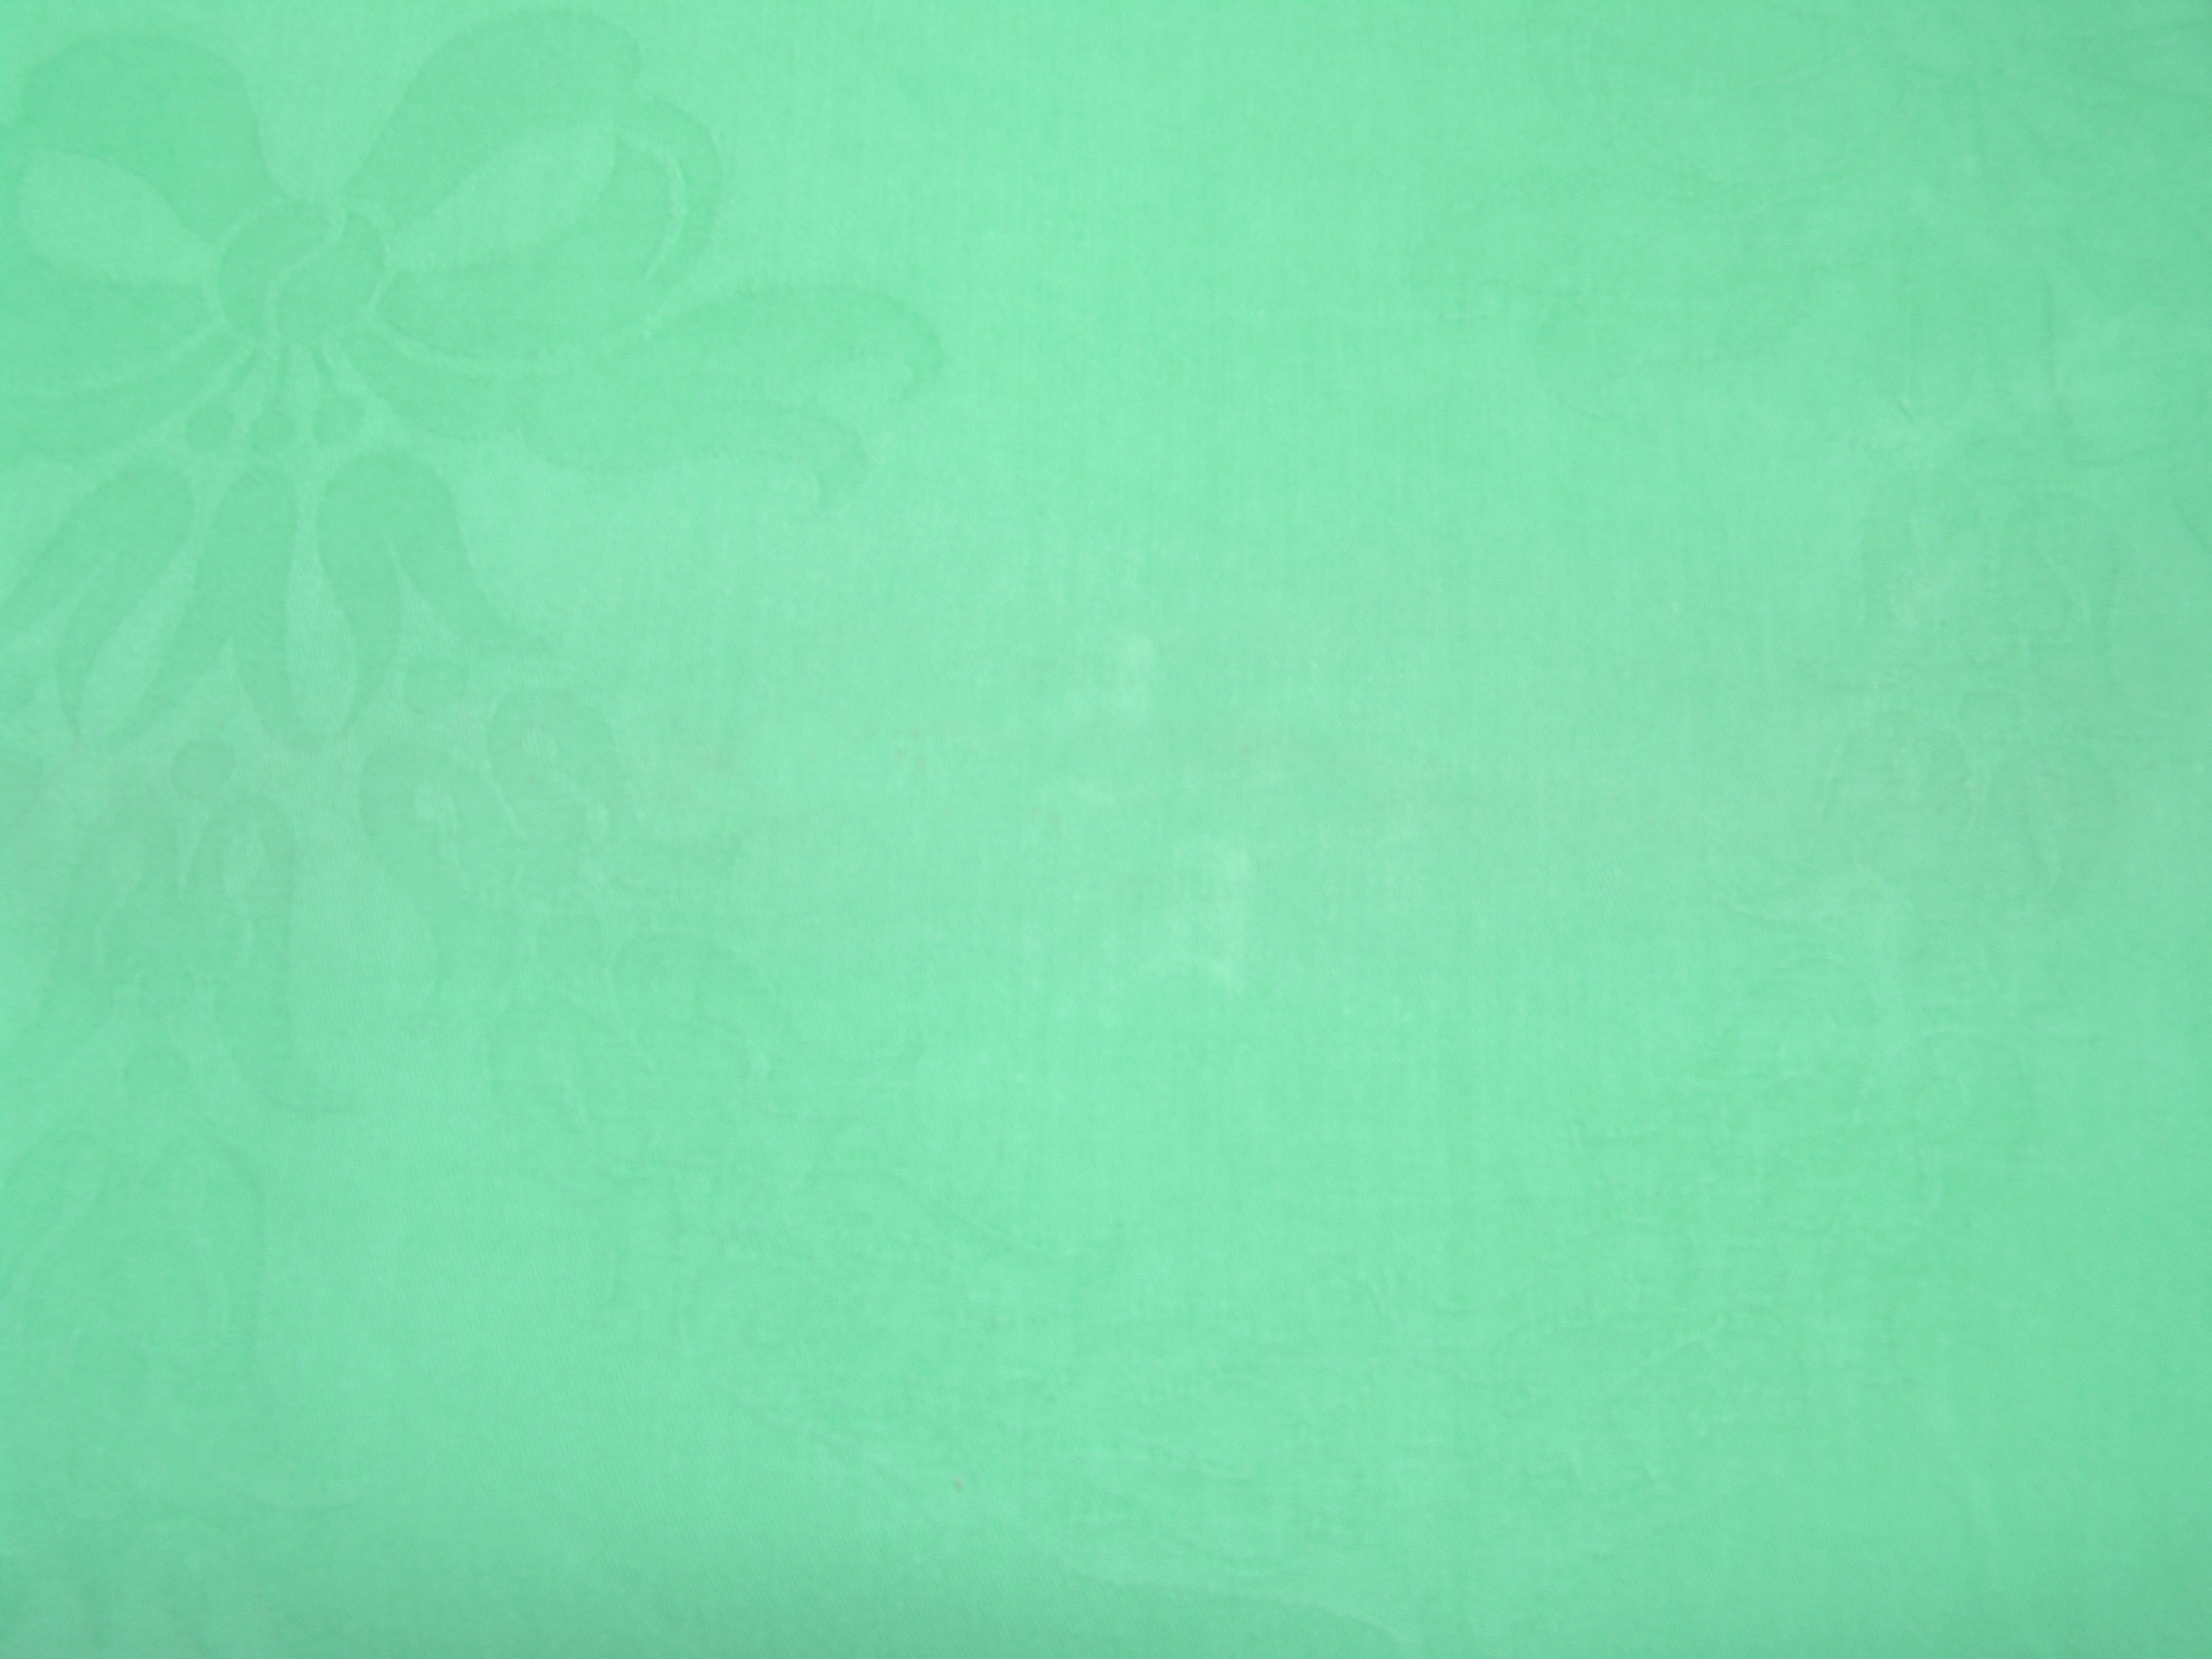 Cotton and Twill Linen Rentals Orlando | Mint Green Bow Cotton Linen